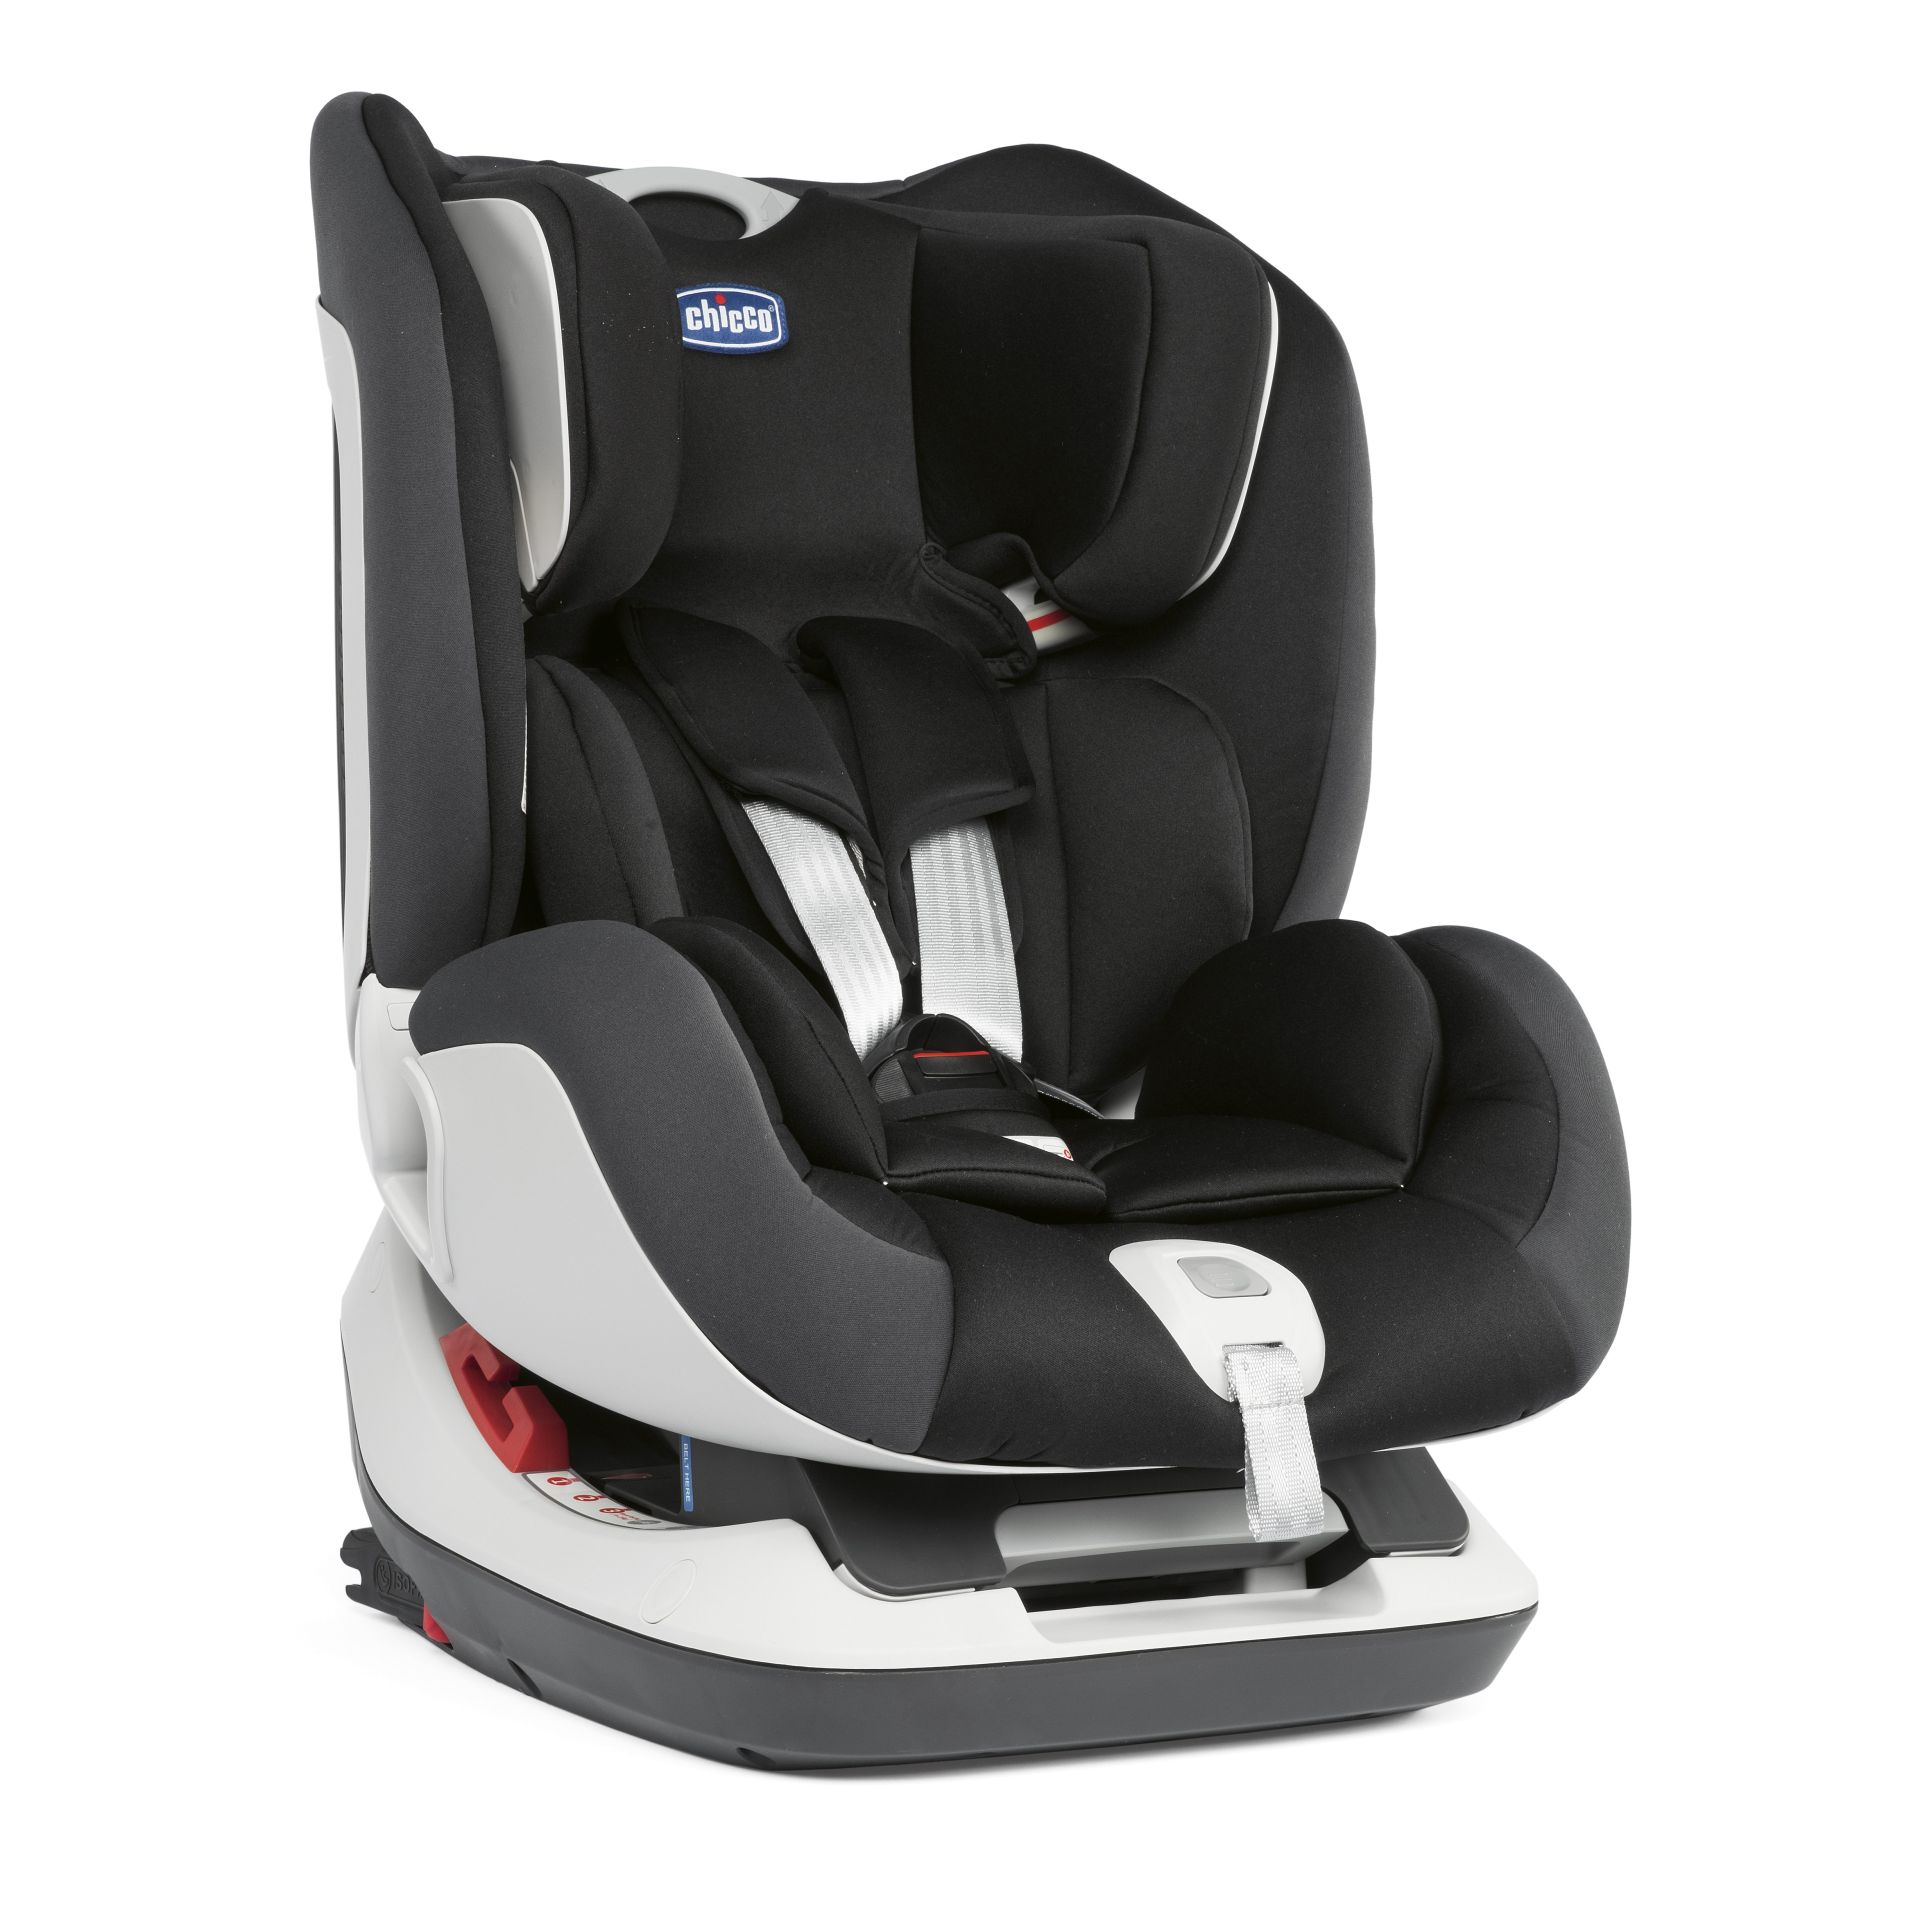 Si ge d enfant chicco seat up 0 1 2 2018 jet black for Siege enfant